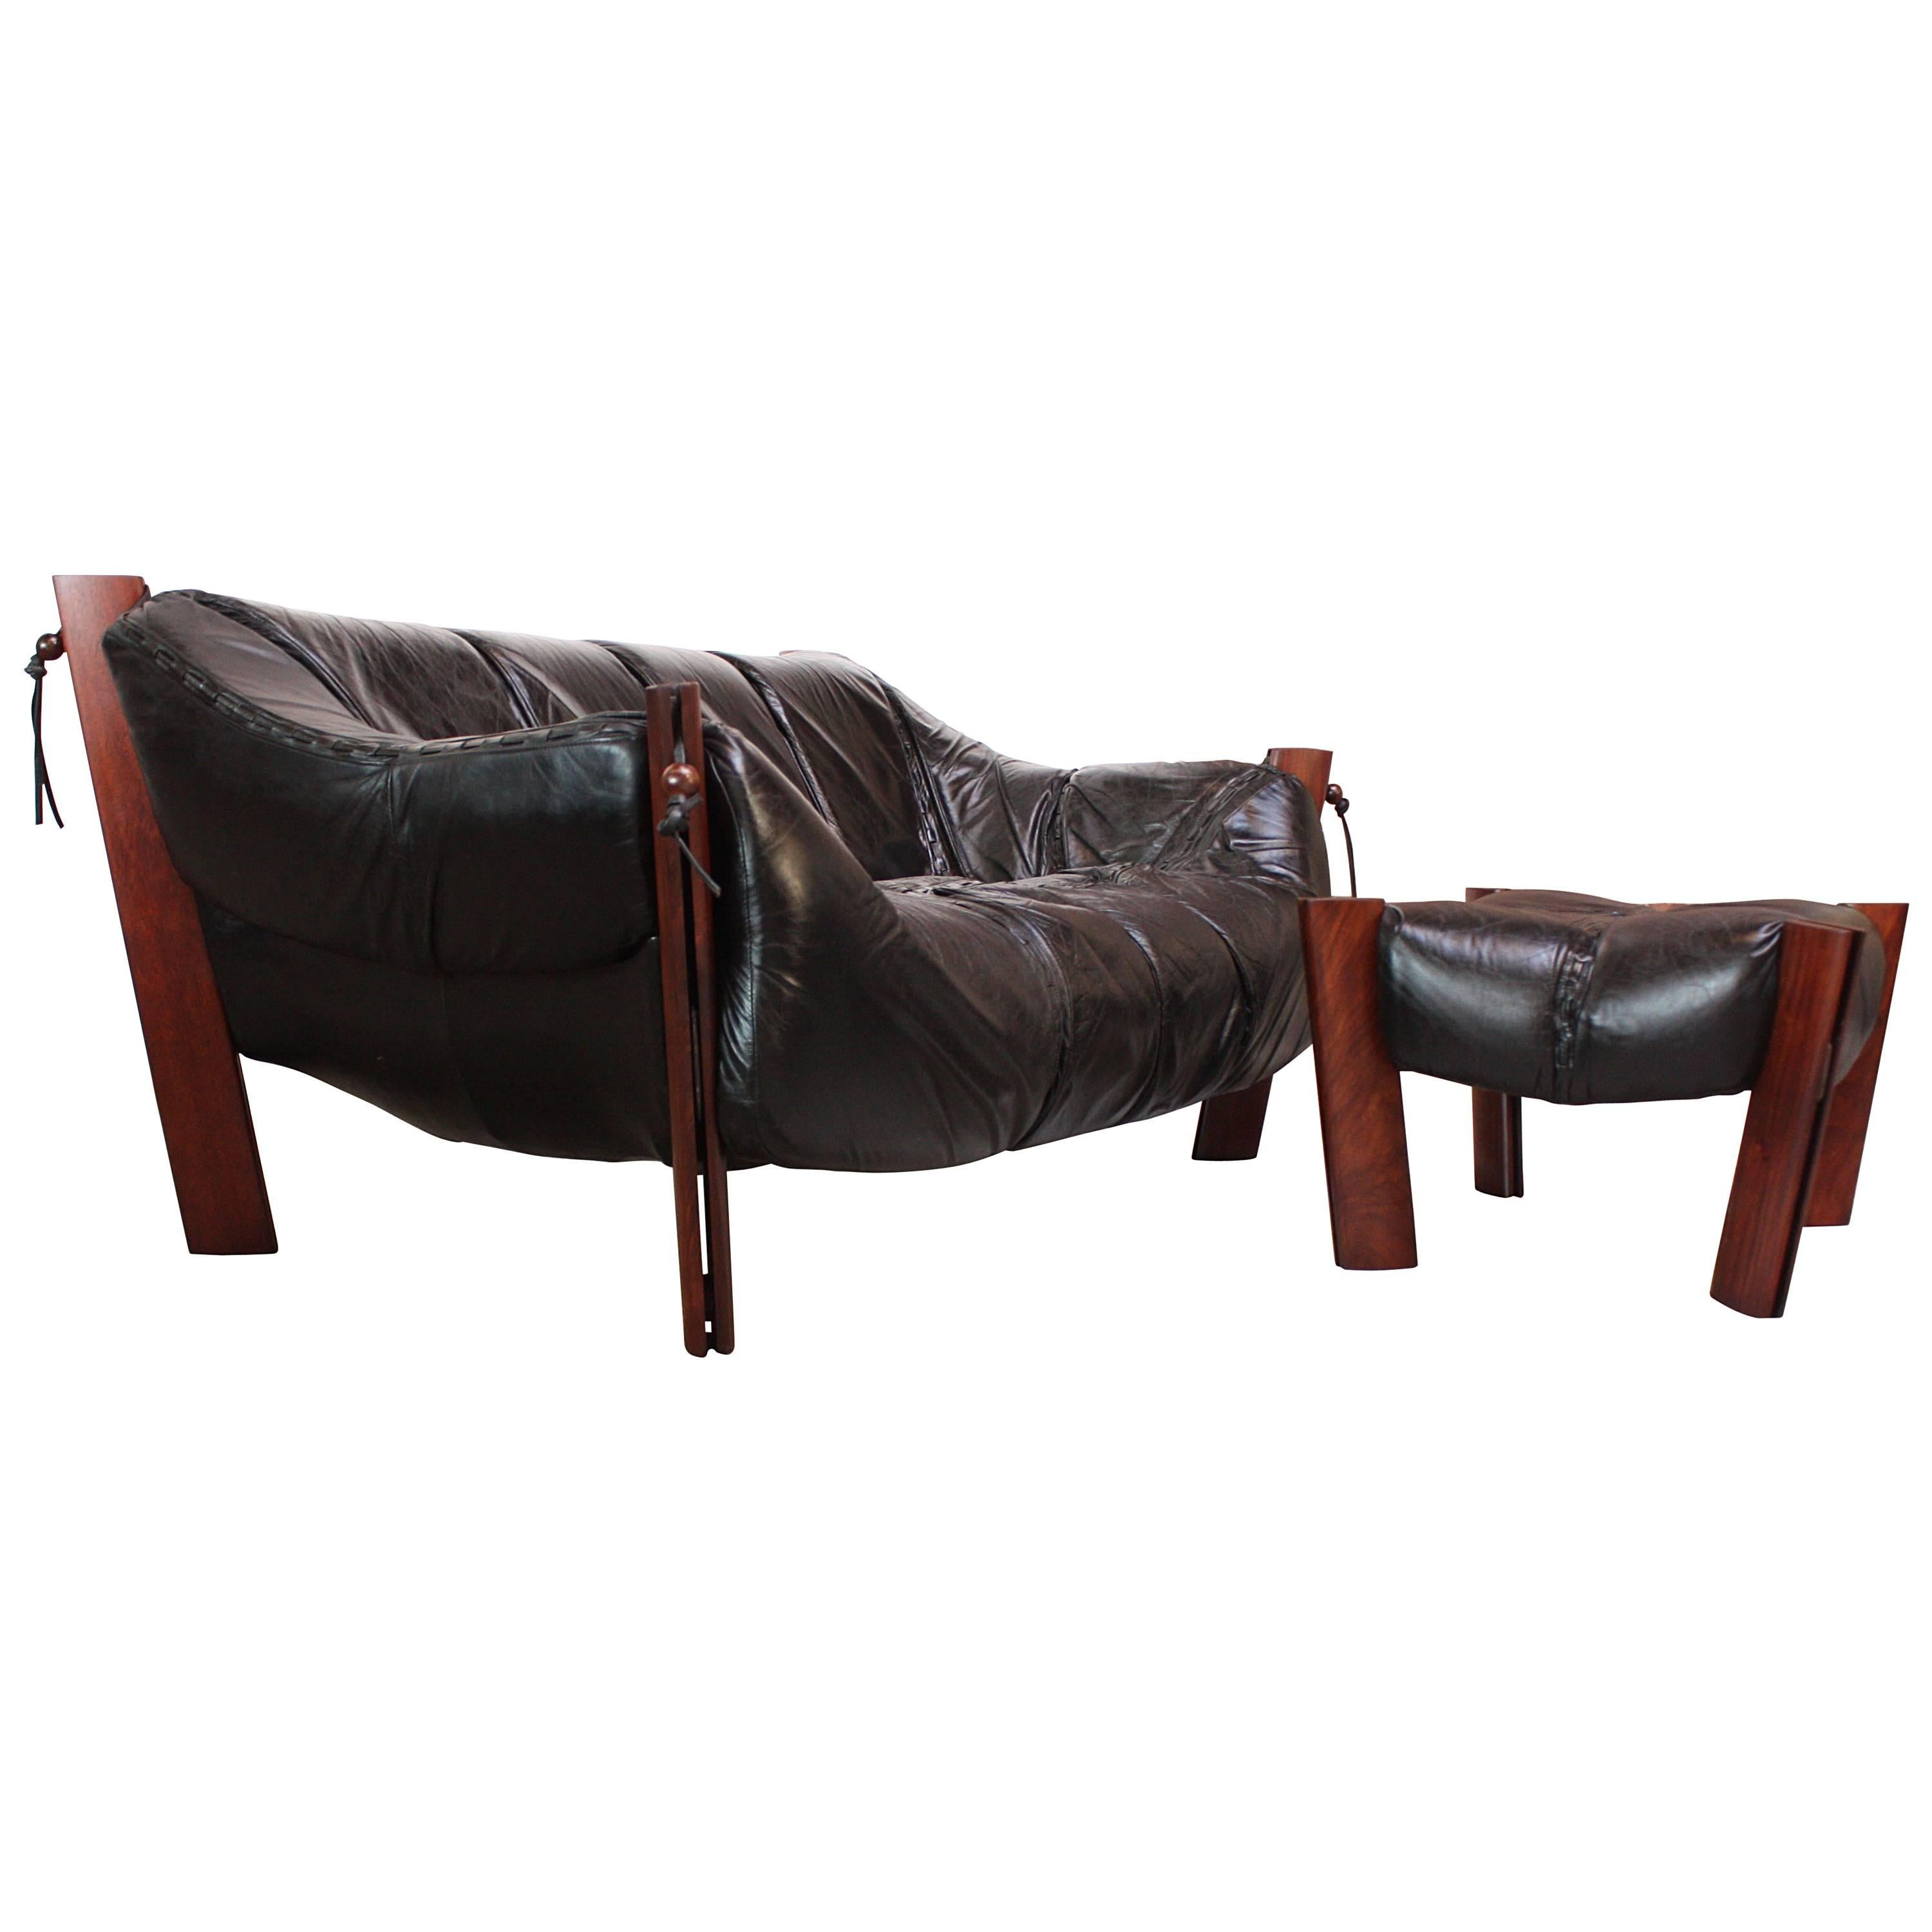 Percival Lafer MP 211 Jacaranda And Leather Two Seat Sofa With Ottoman